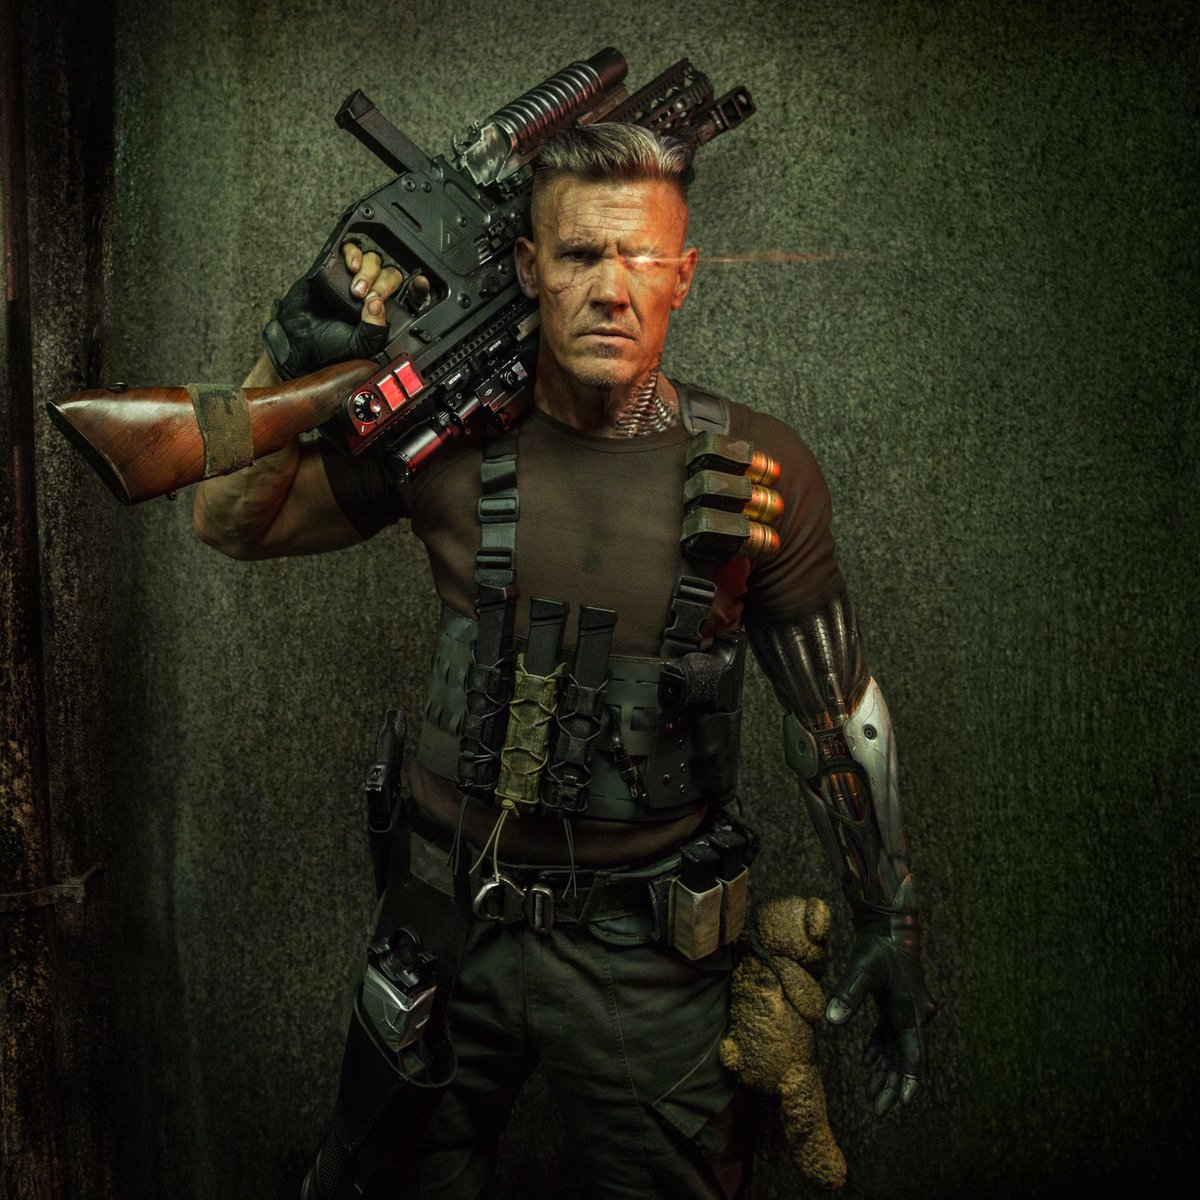 Here's your first look at #JoshBrolin as #Cable in #deadpool2 staring #RyanReynolds #joshbrolincable pic.twitter.com/JGBNSGzJFR